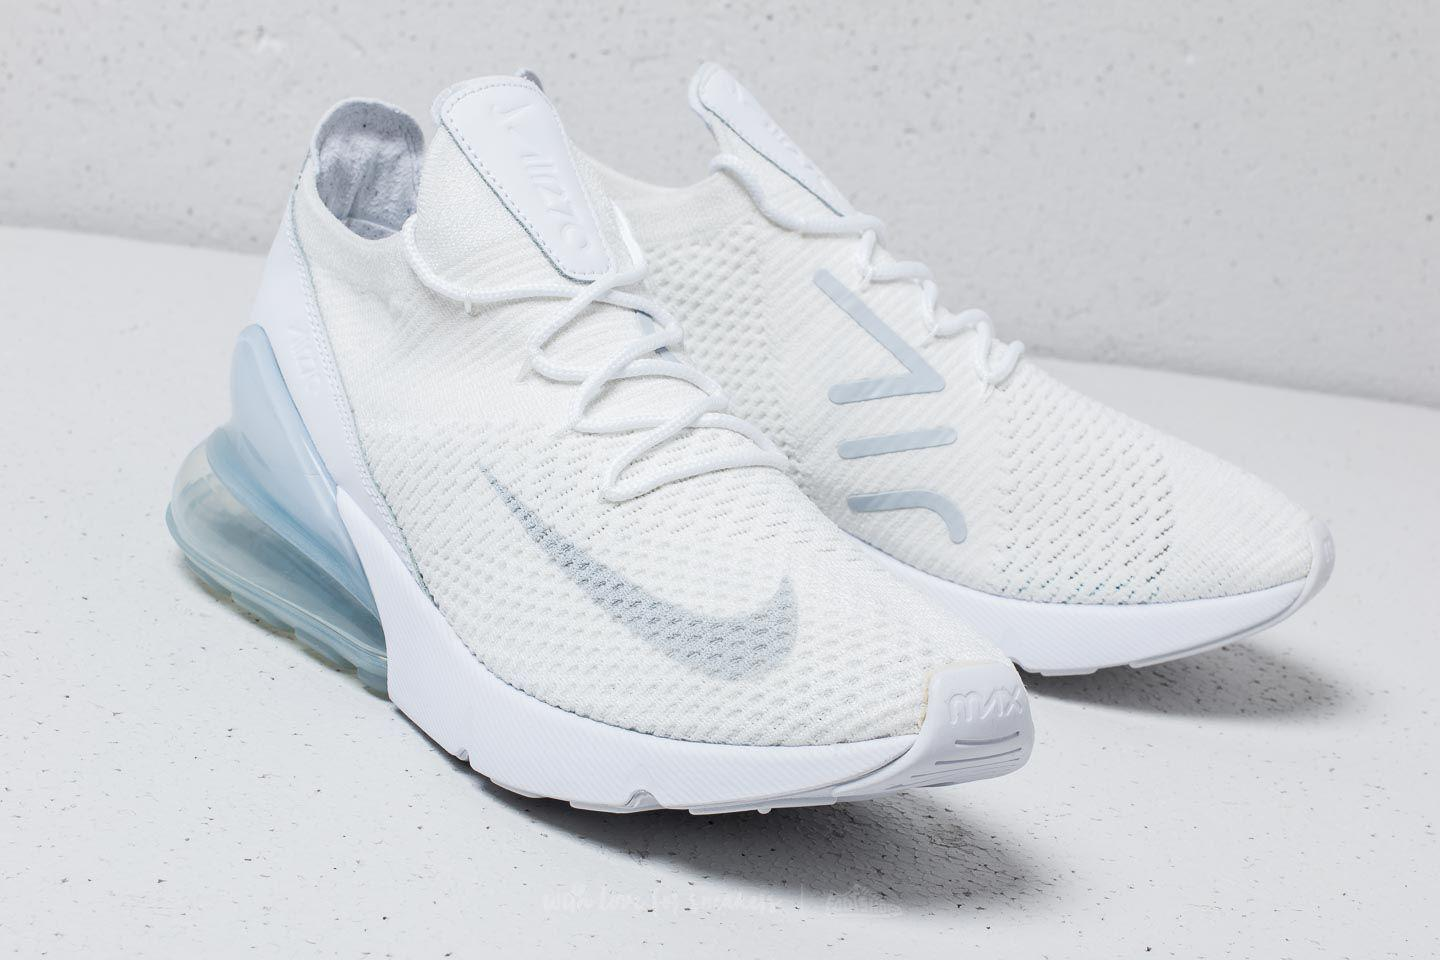 67845e27ac Nike Air Max 270 Flyknit White/ Pure Platinum-white in White for Men ...